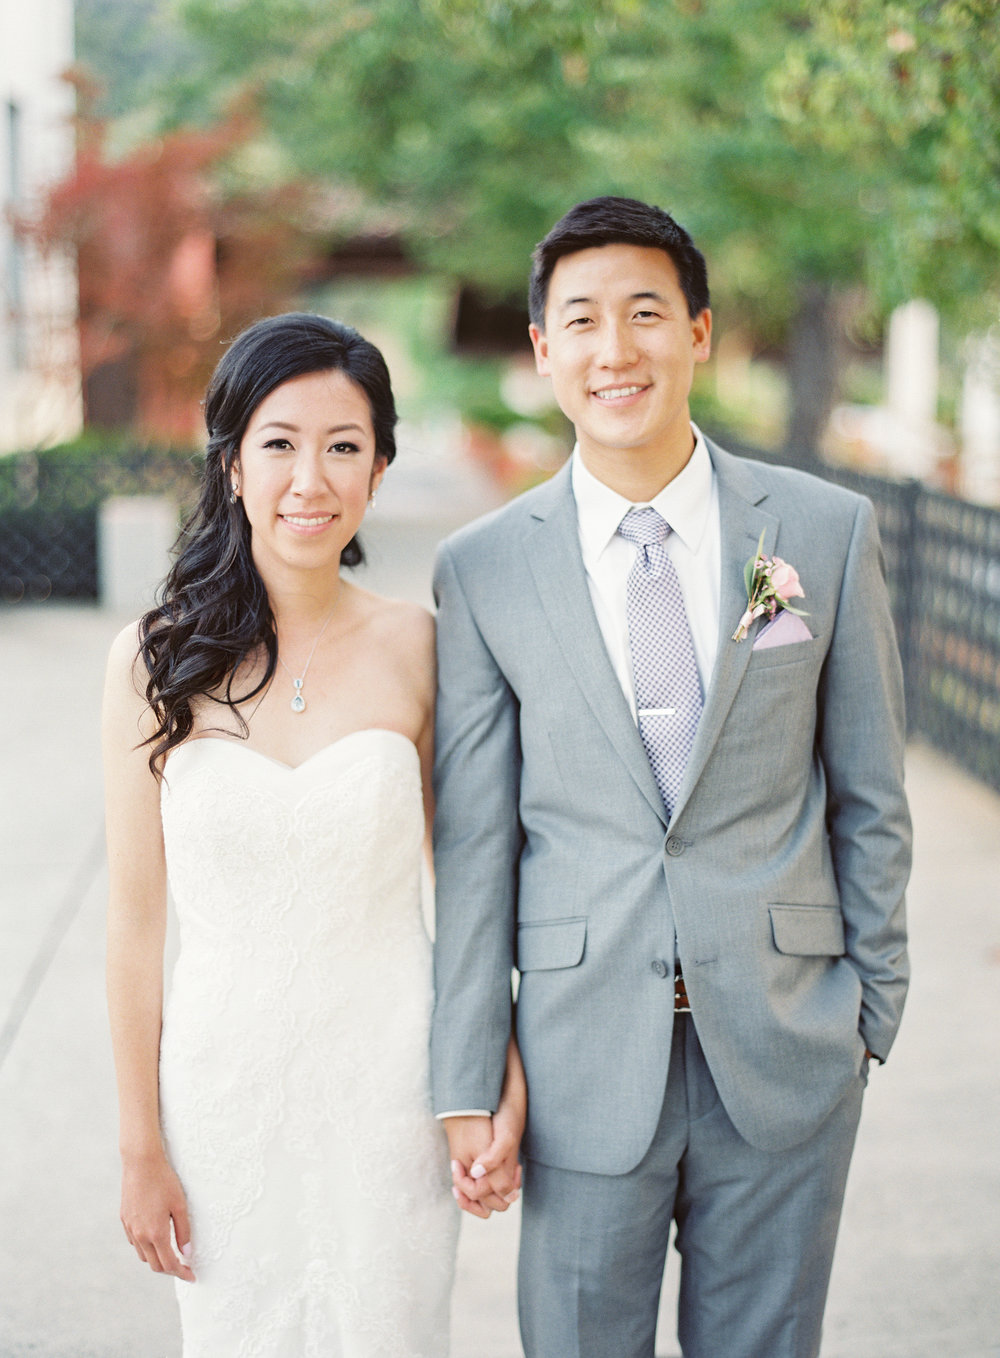 Winnie & Justin // Castlewood Country Club Wedding — Nathalie Cheng